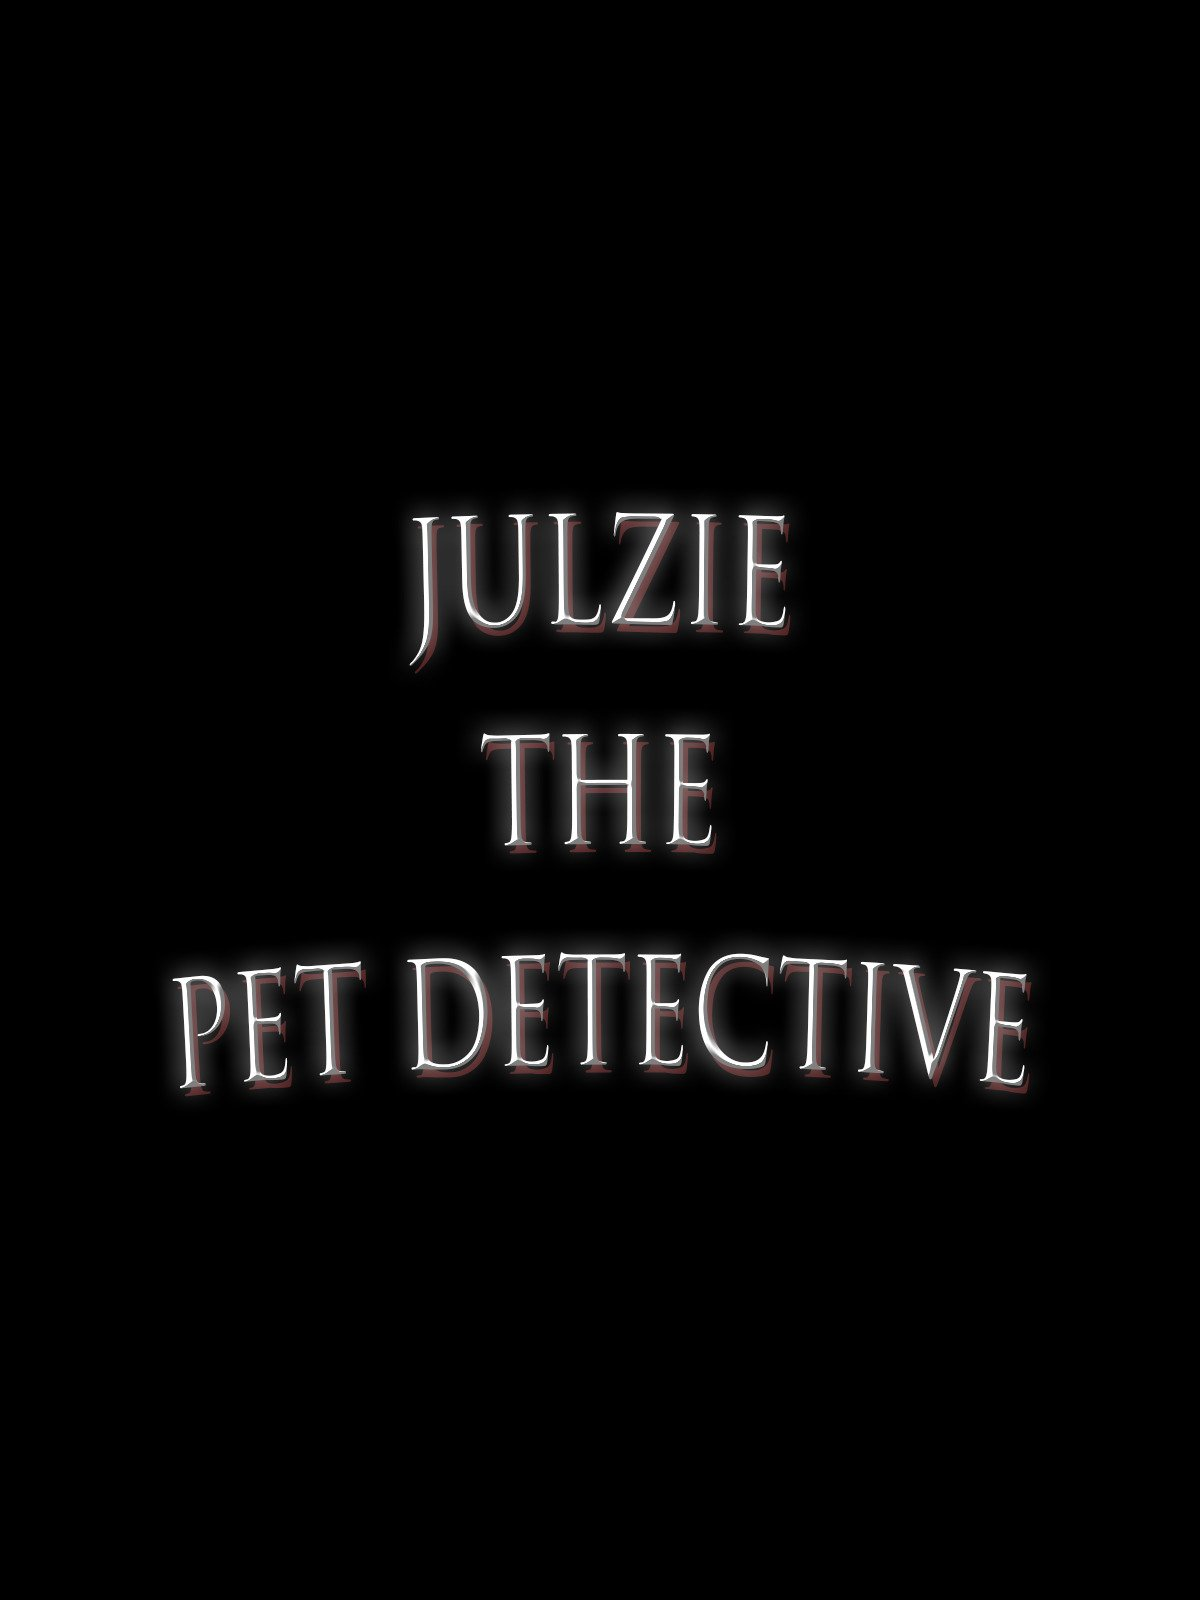 Julzie The Pet Detective